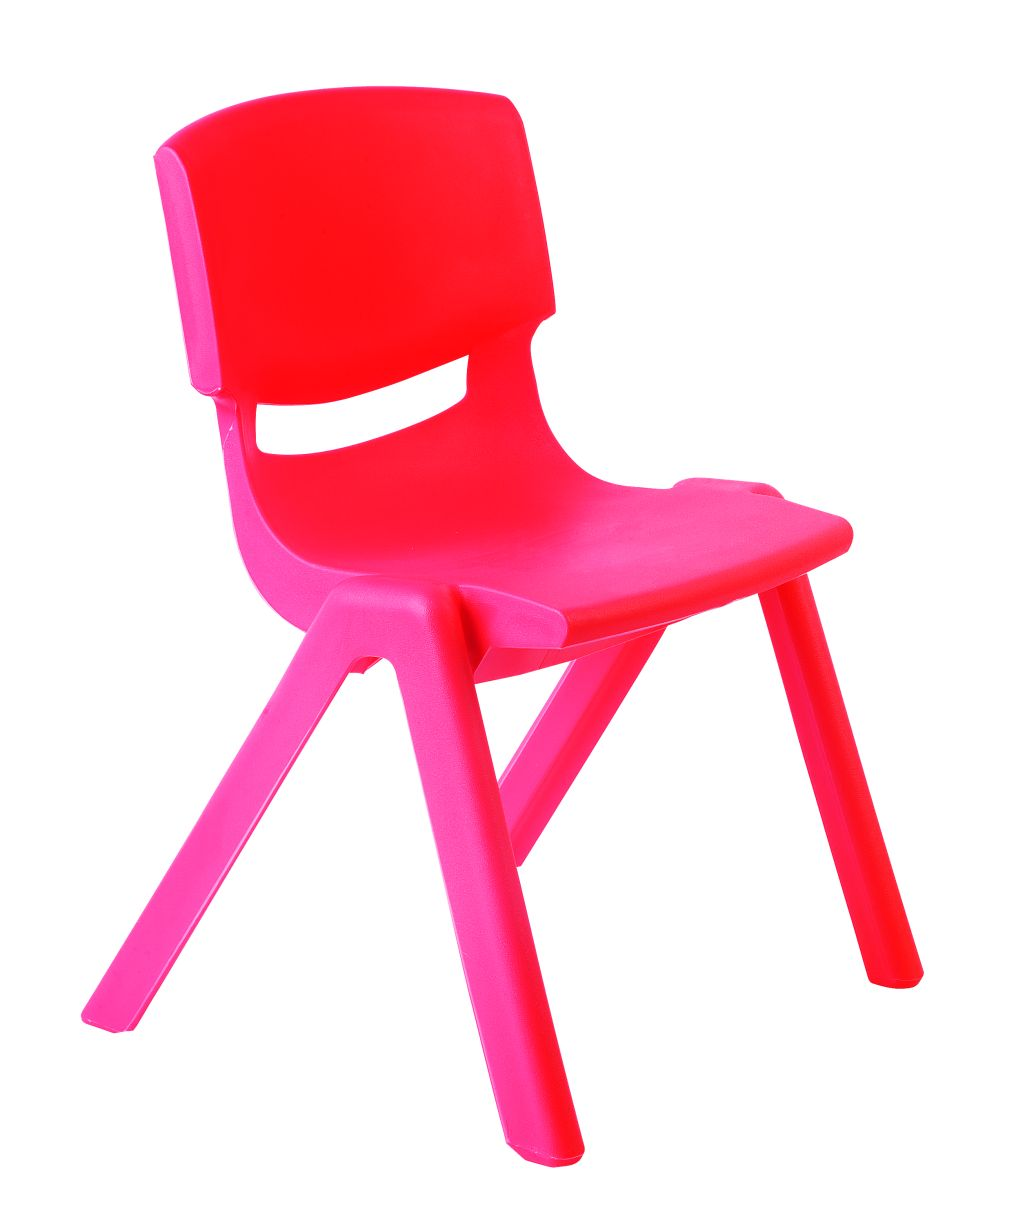 chaise plastique mobilier nowa skola ludesign yc0001 yc1001 - Chaise Coloree